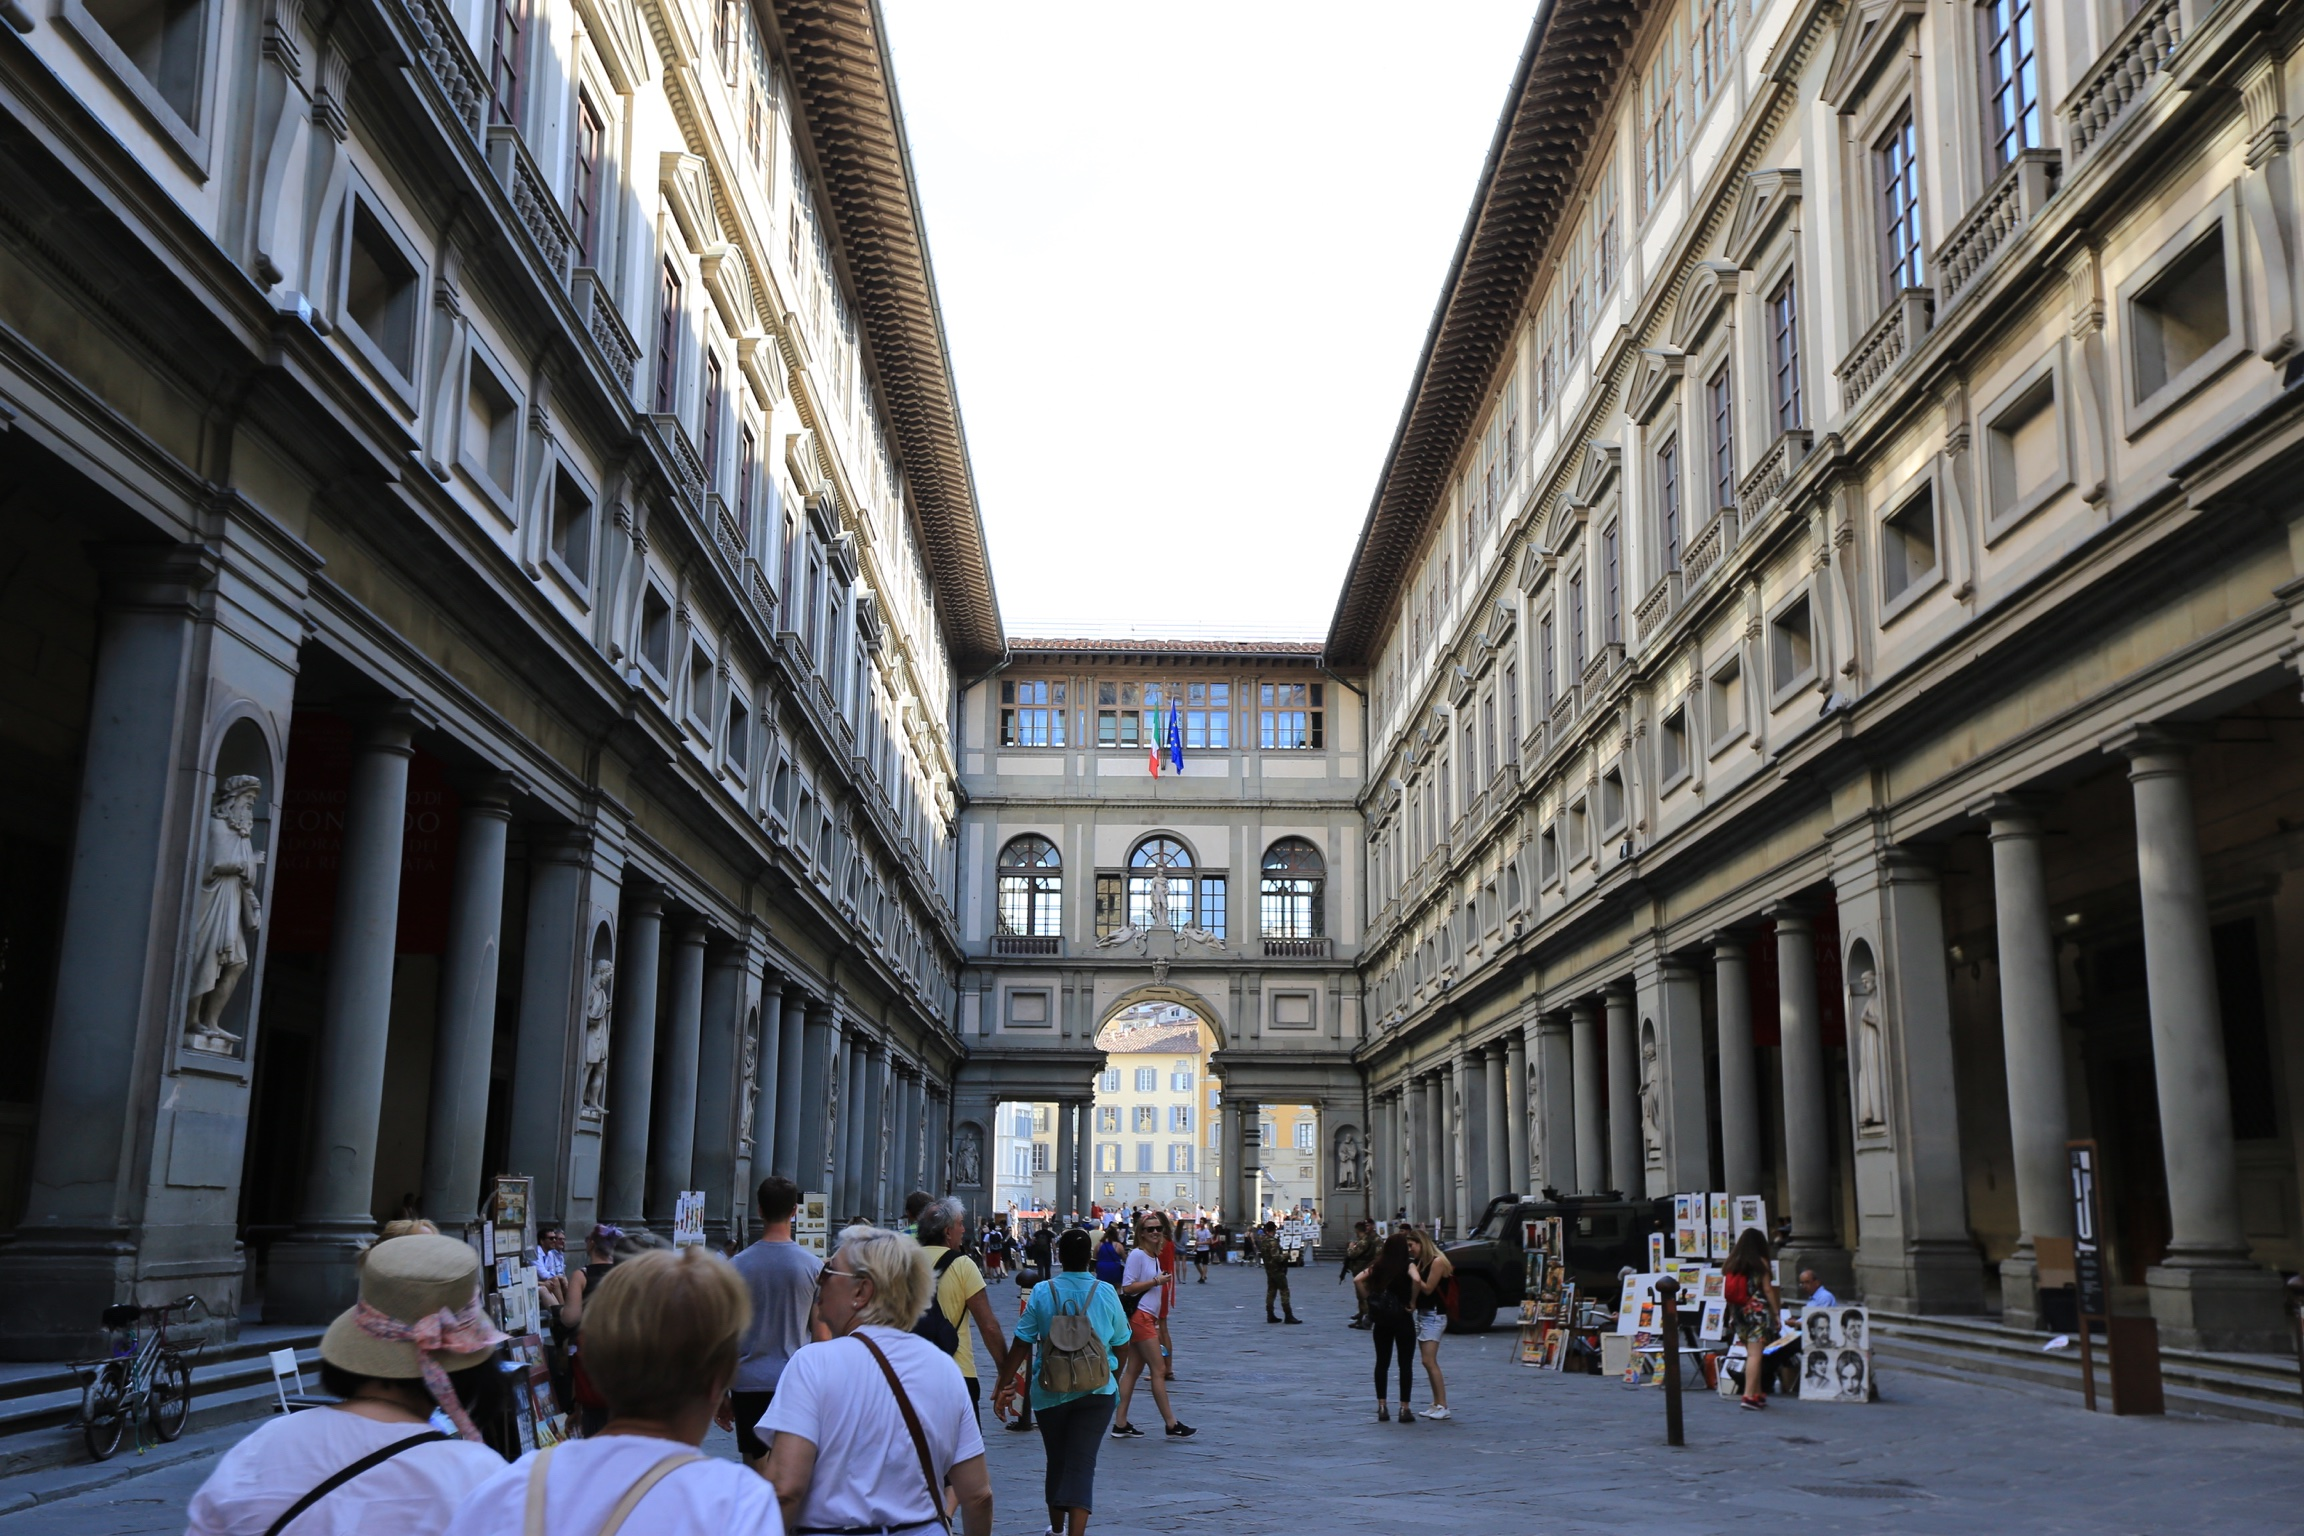 the outside of the beautiful uffizi gallery. swooooooooon.